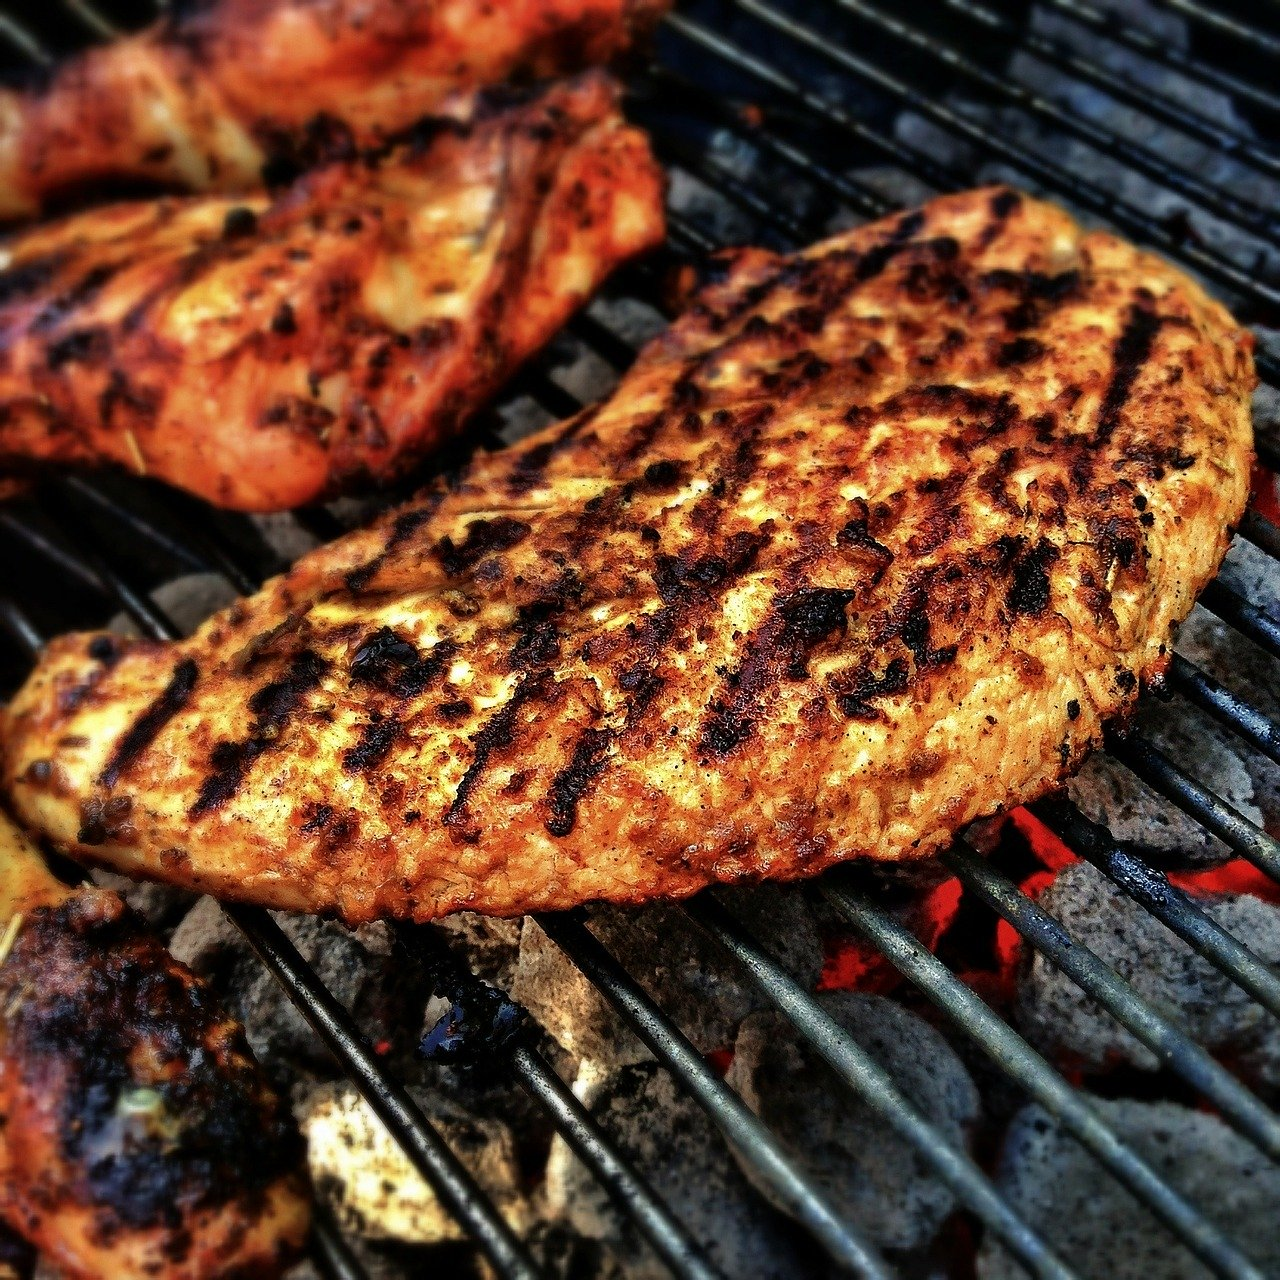 barbecue, meat, grill